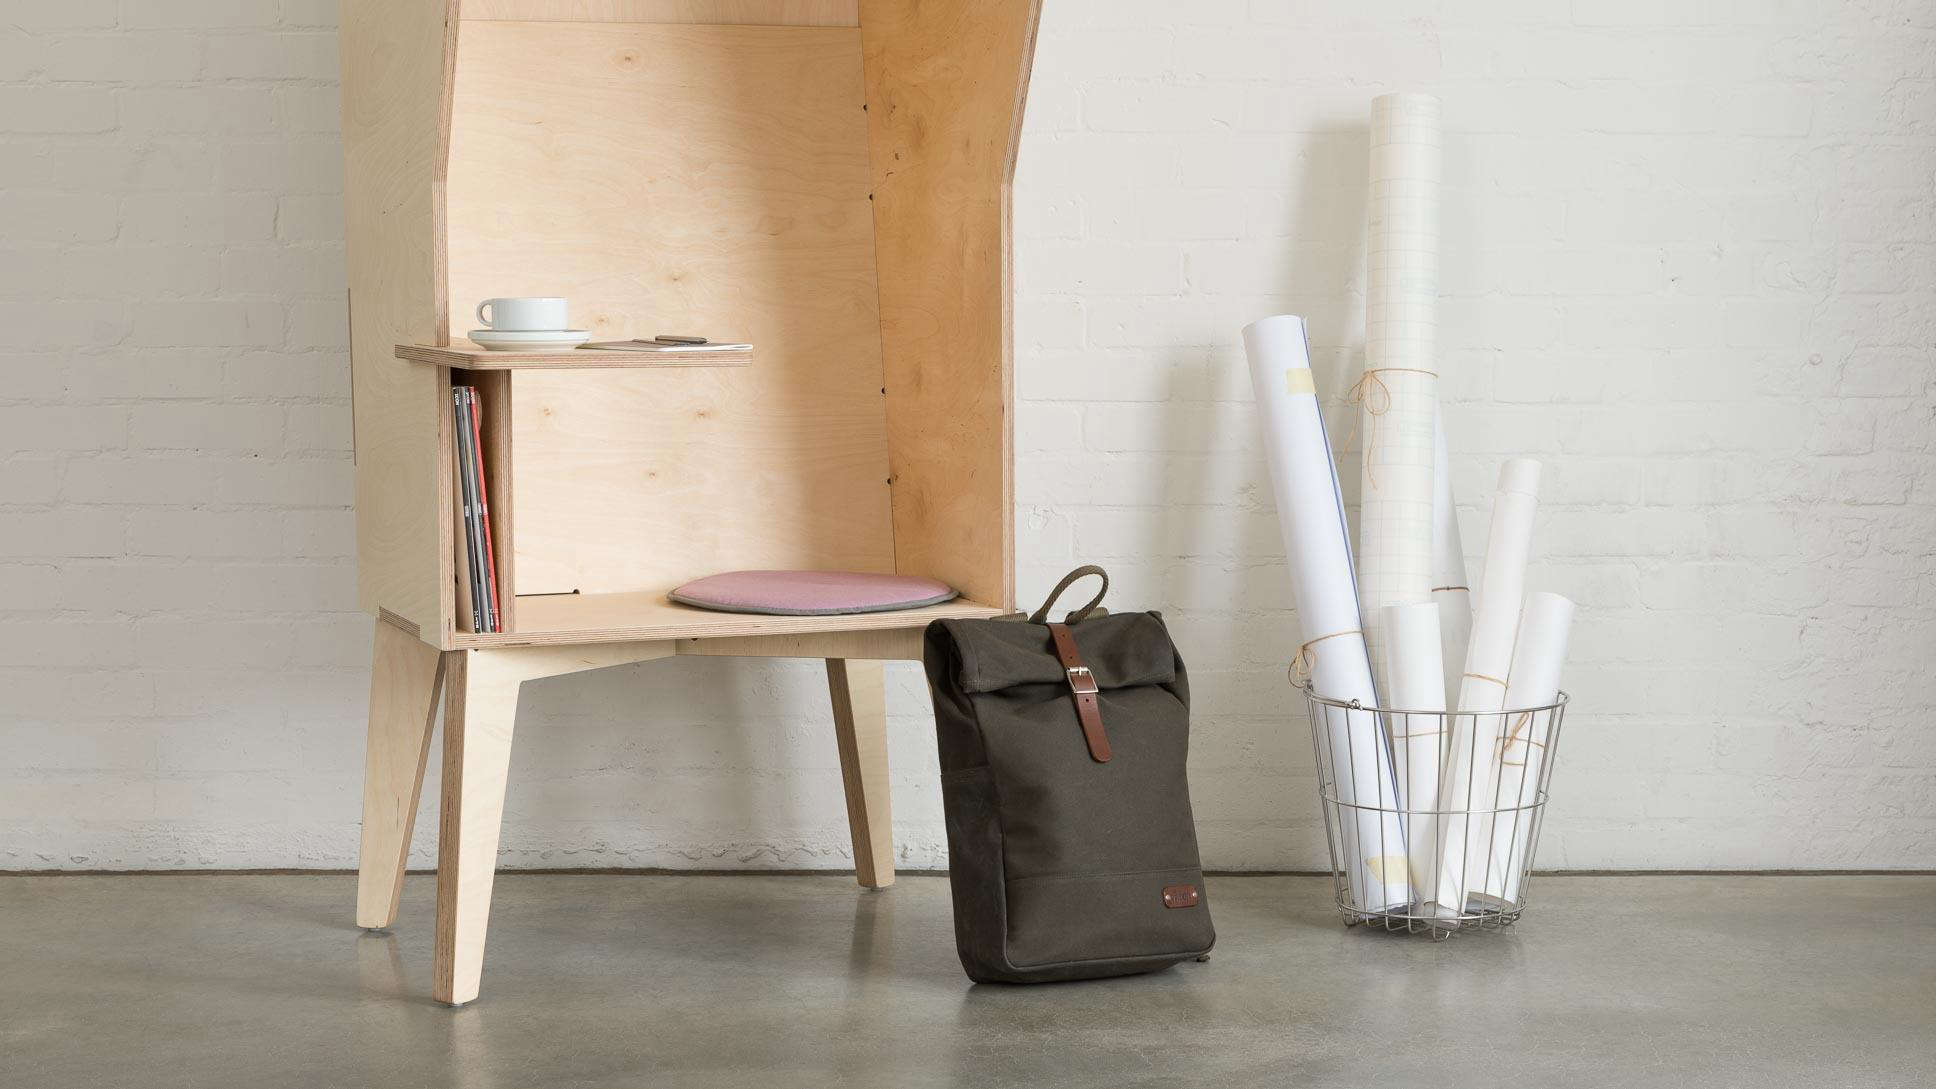 The Ordered Office: Modular Plywood Storage from Opendesk